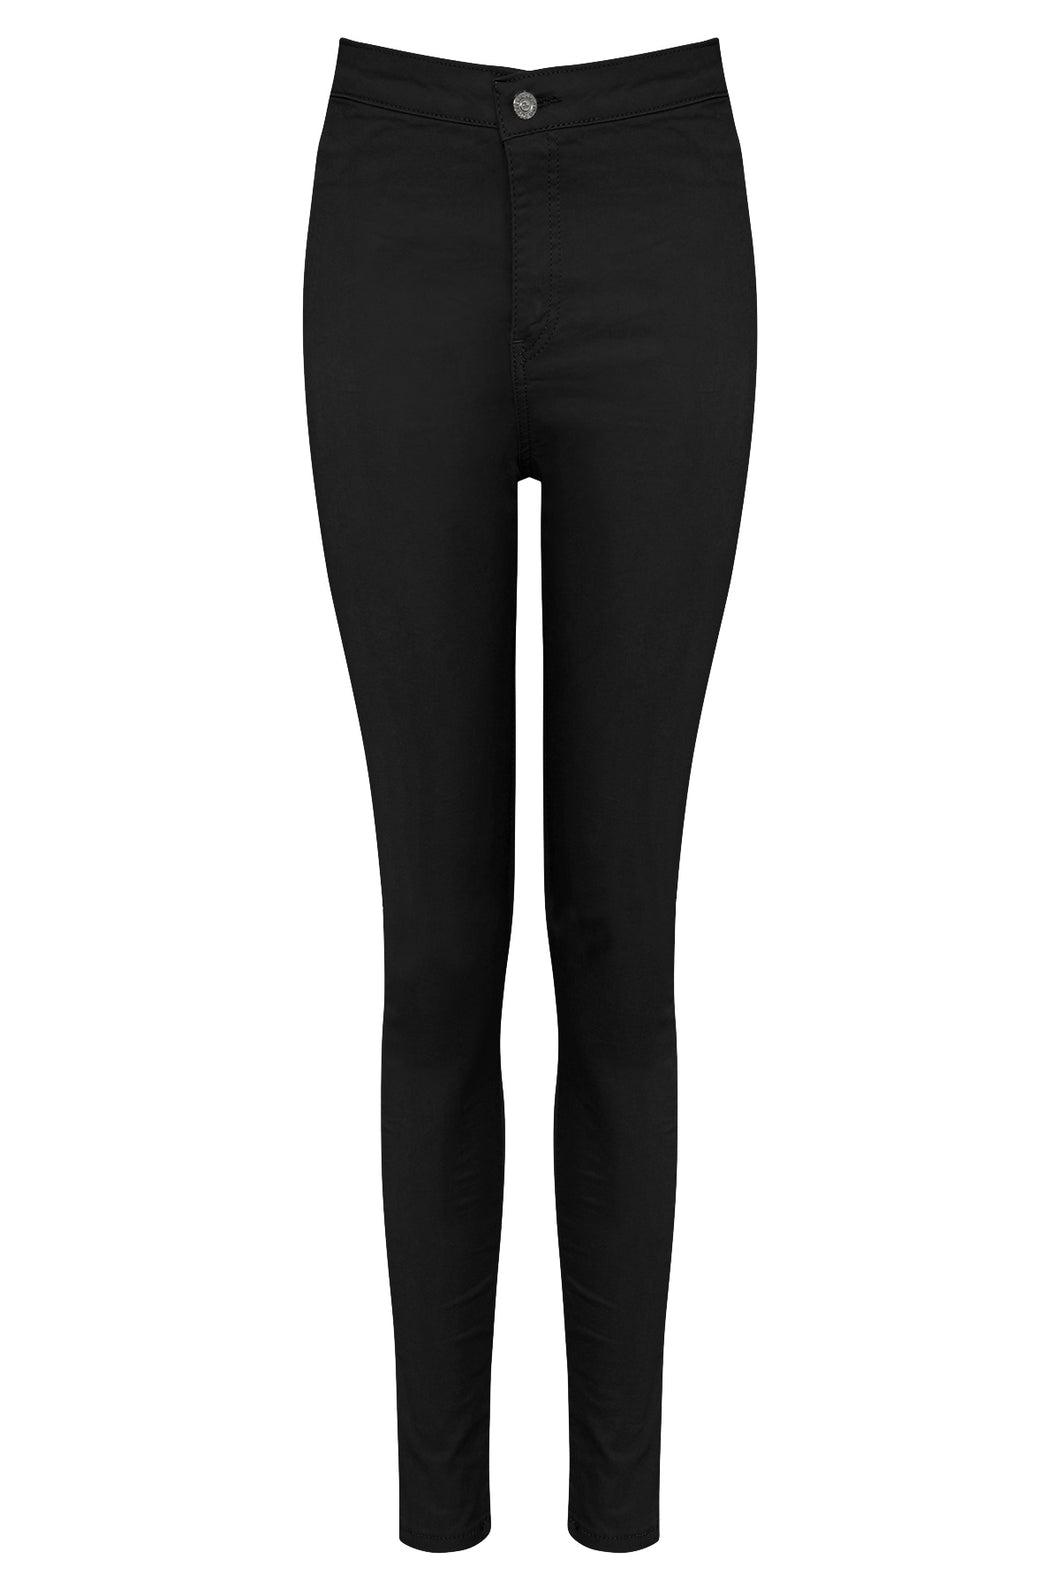 Stretchy Black High Waisted Jeans